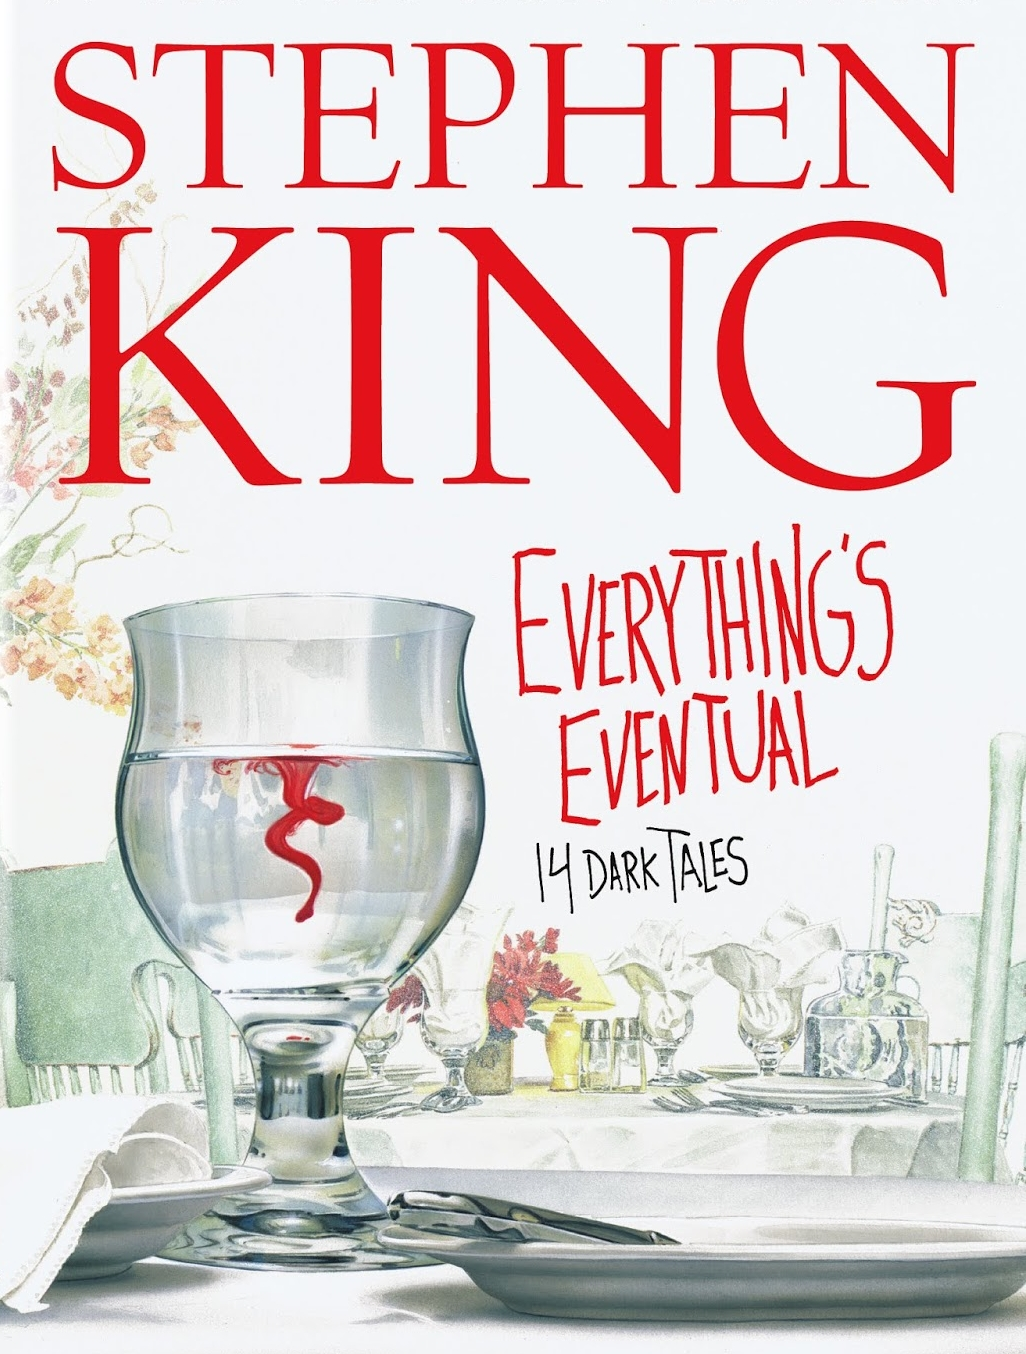 That Feeling You Can Only Say What It Is In French ( story ) ... Stephen King